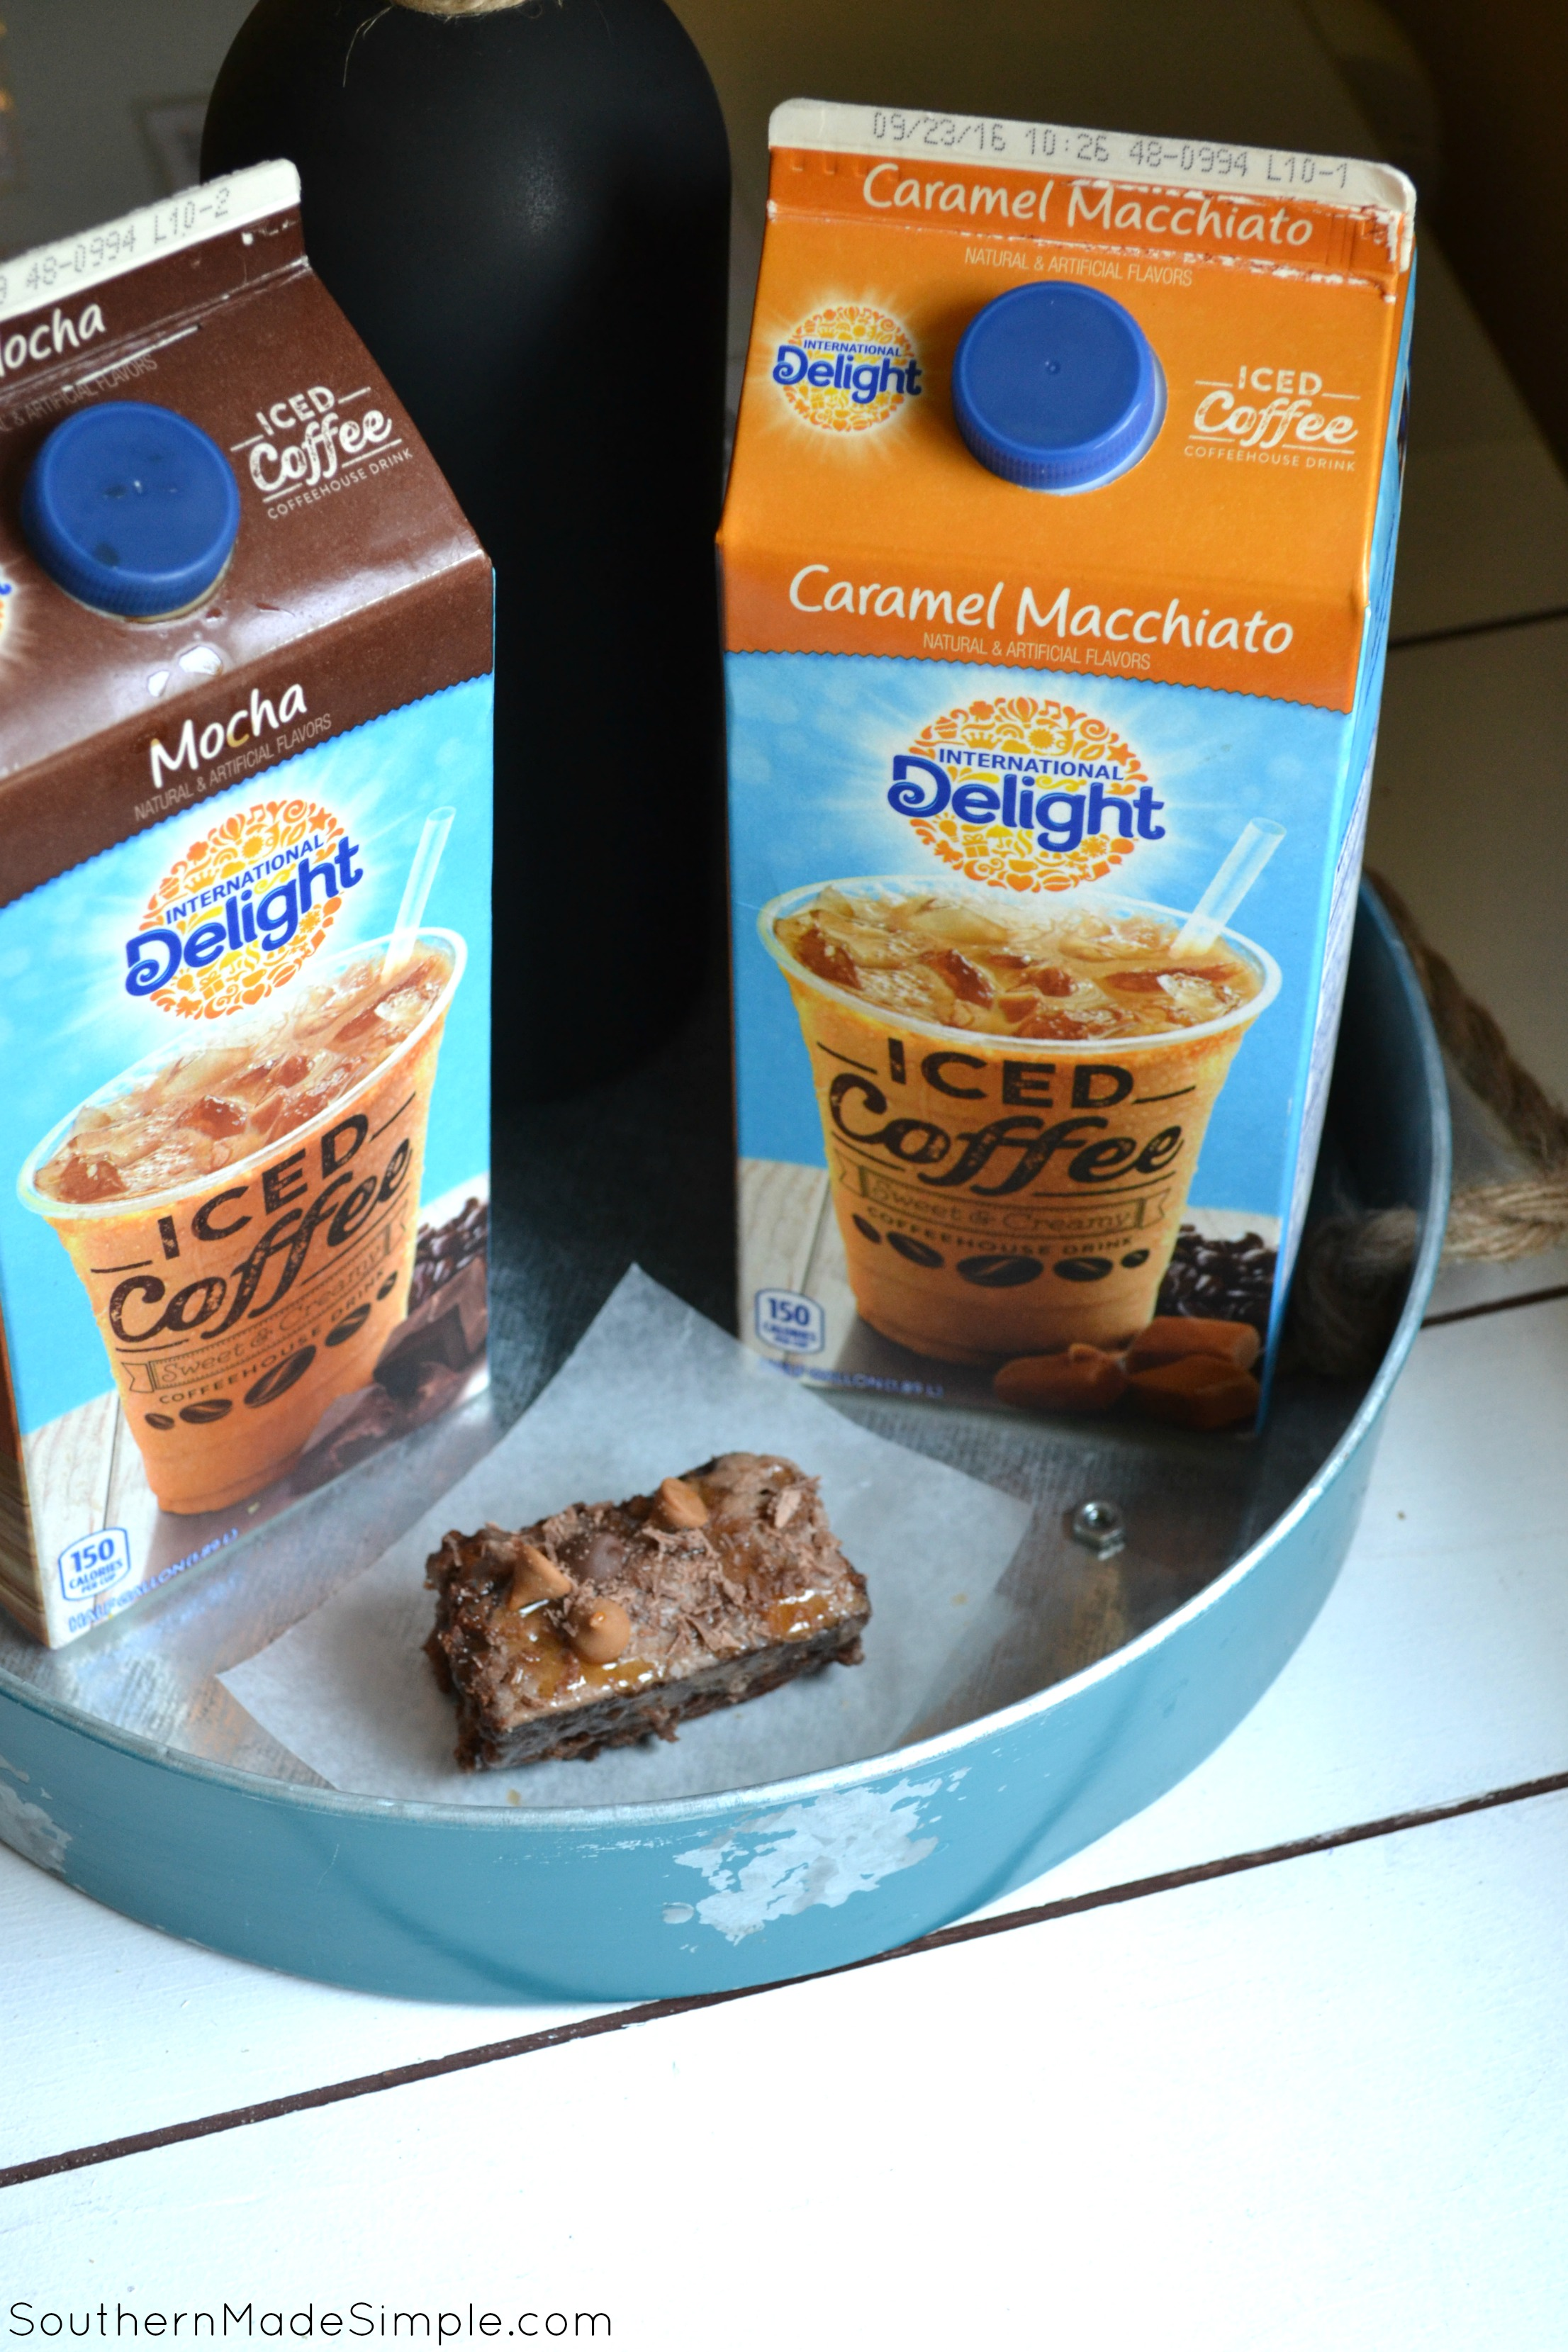 Mocha Fudge Brownies with Creamed Coffee and Caramel Drizzle - these little squares of Heaven are to die for! And I didn't even have to go to a specialty coffee shop to get them! #FoundMyDelight #ad